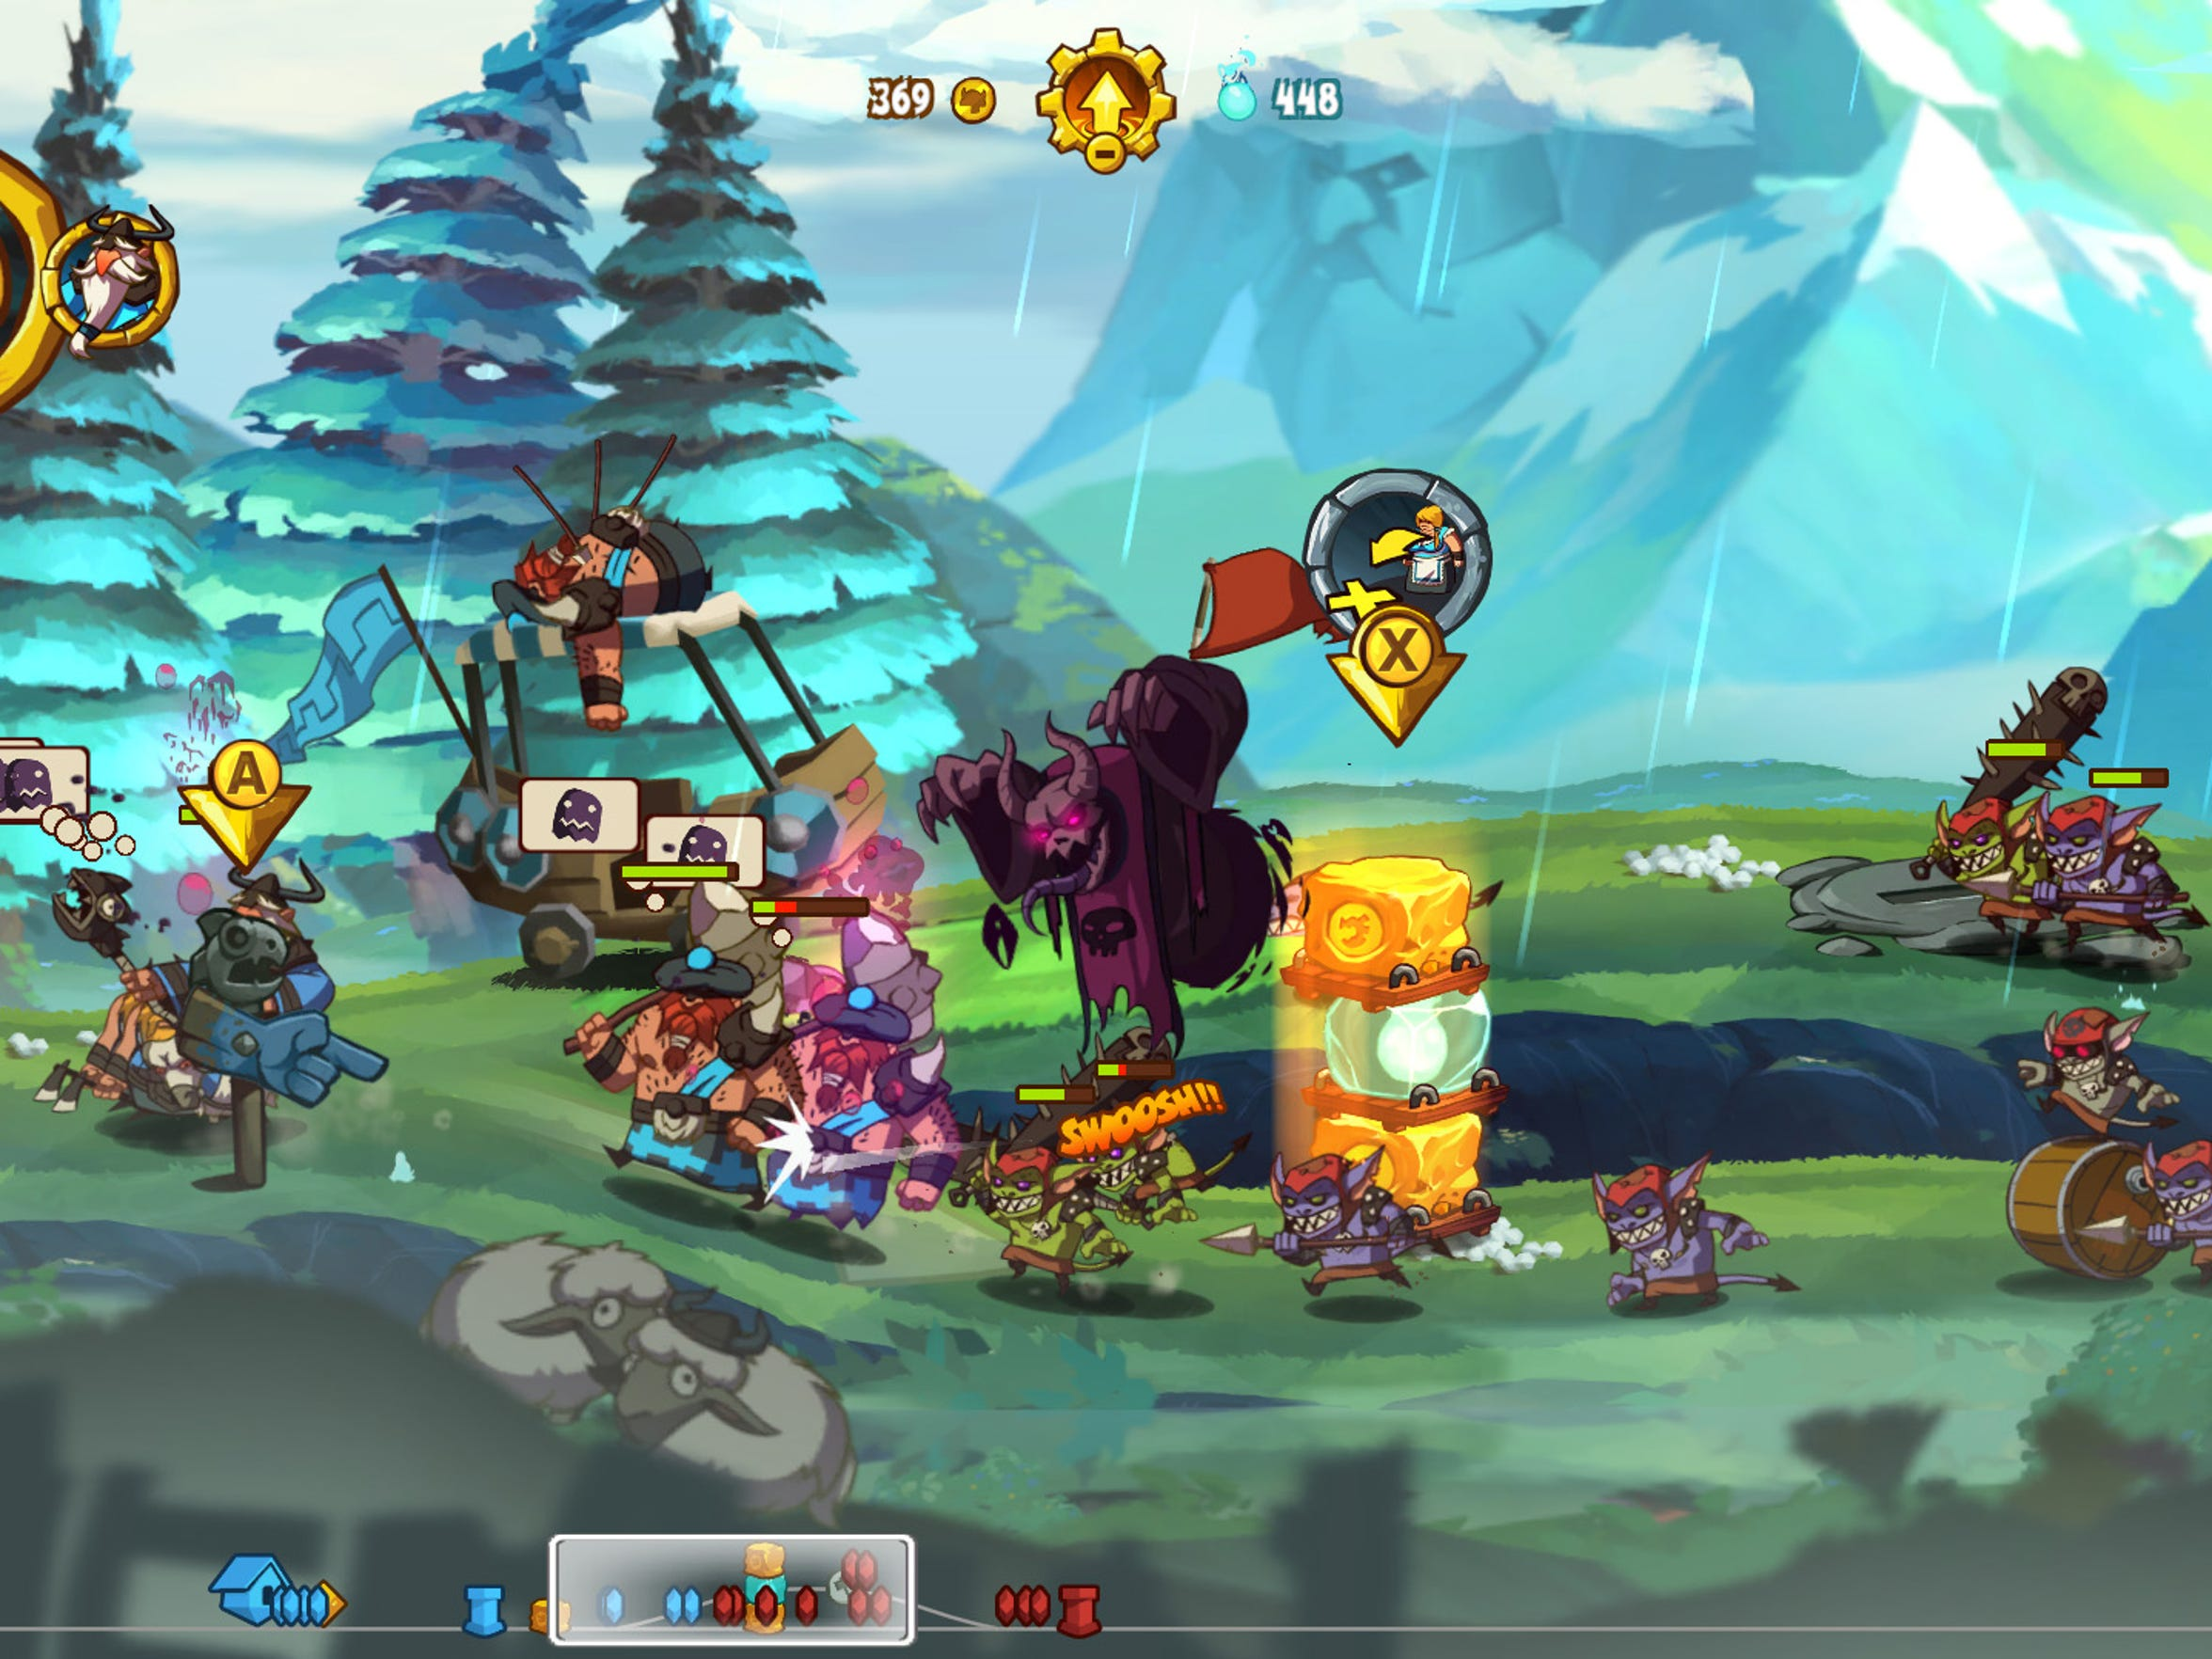 Play as Vikings, Demons and Persians in Ronimo's irreverent sidescrolling strategy game for Nintendo's Wii U console.